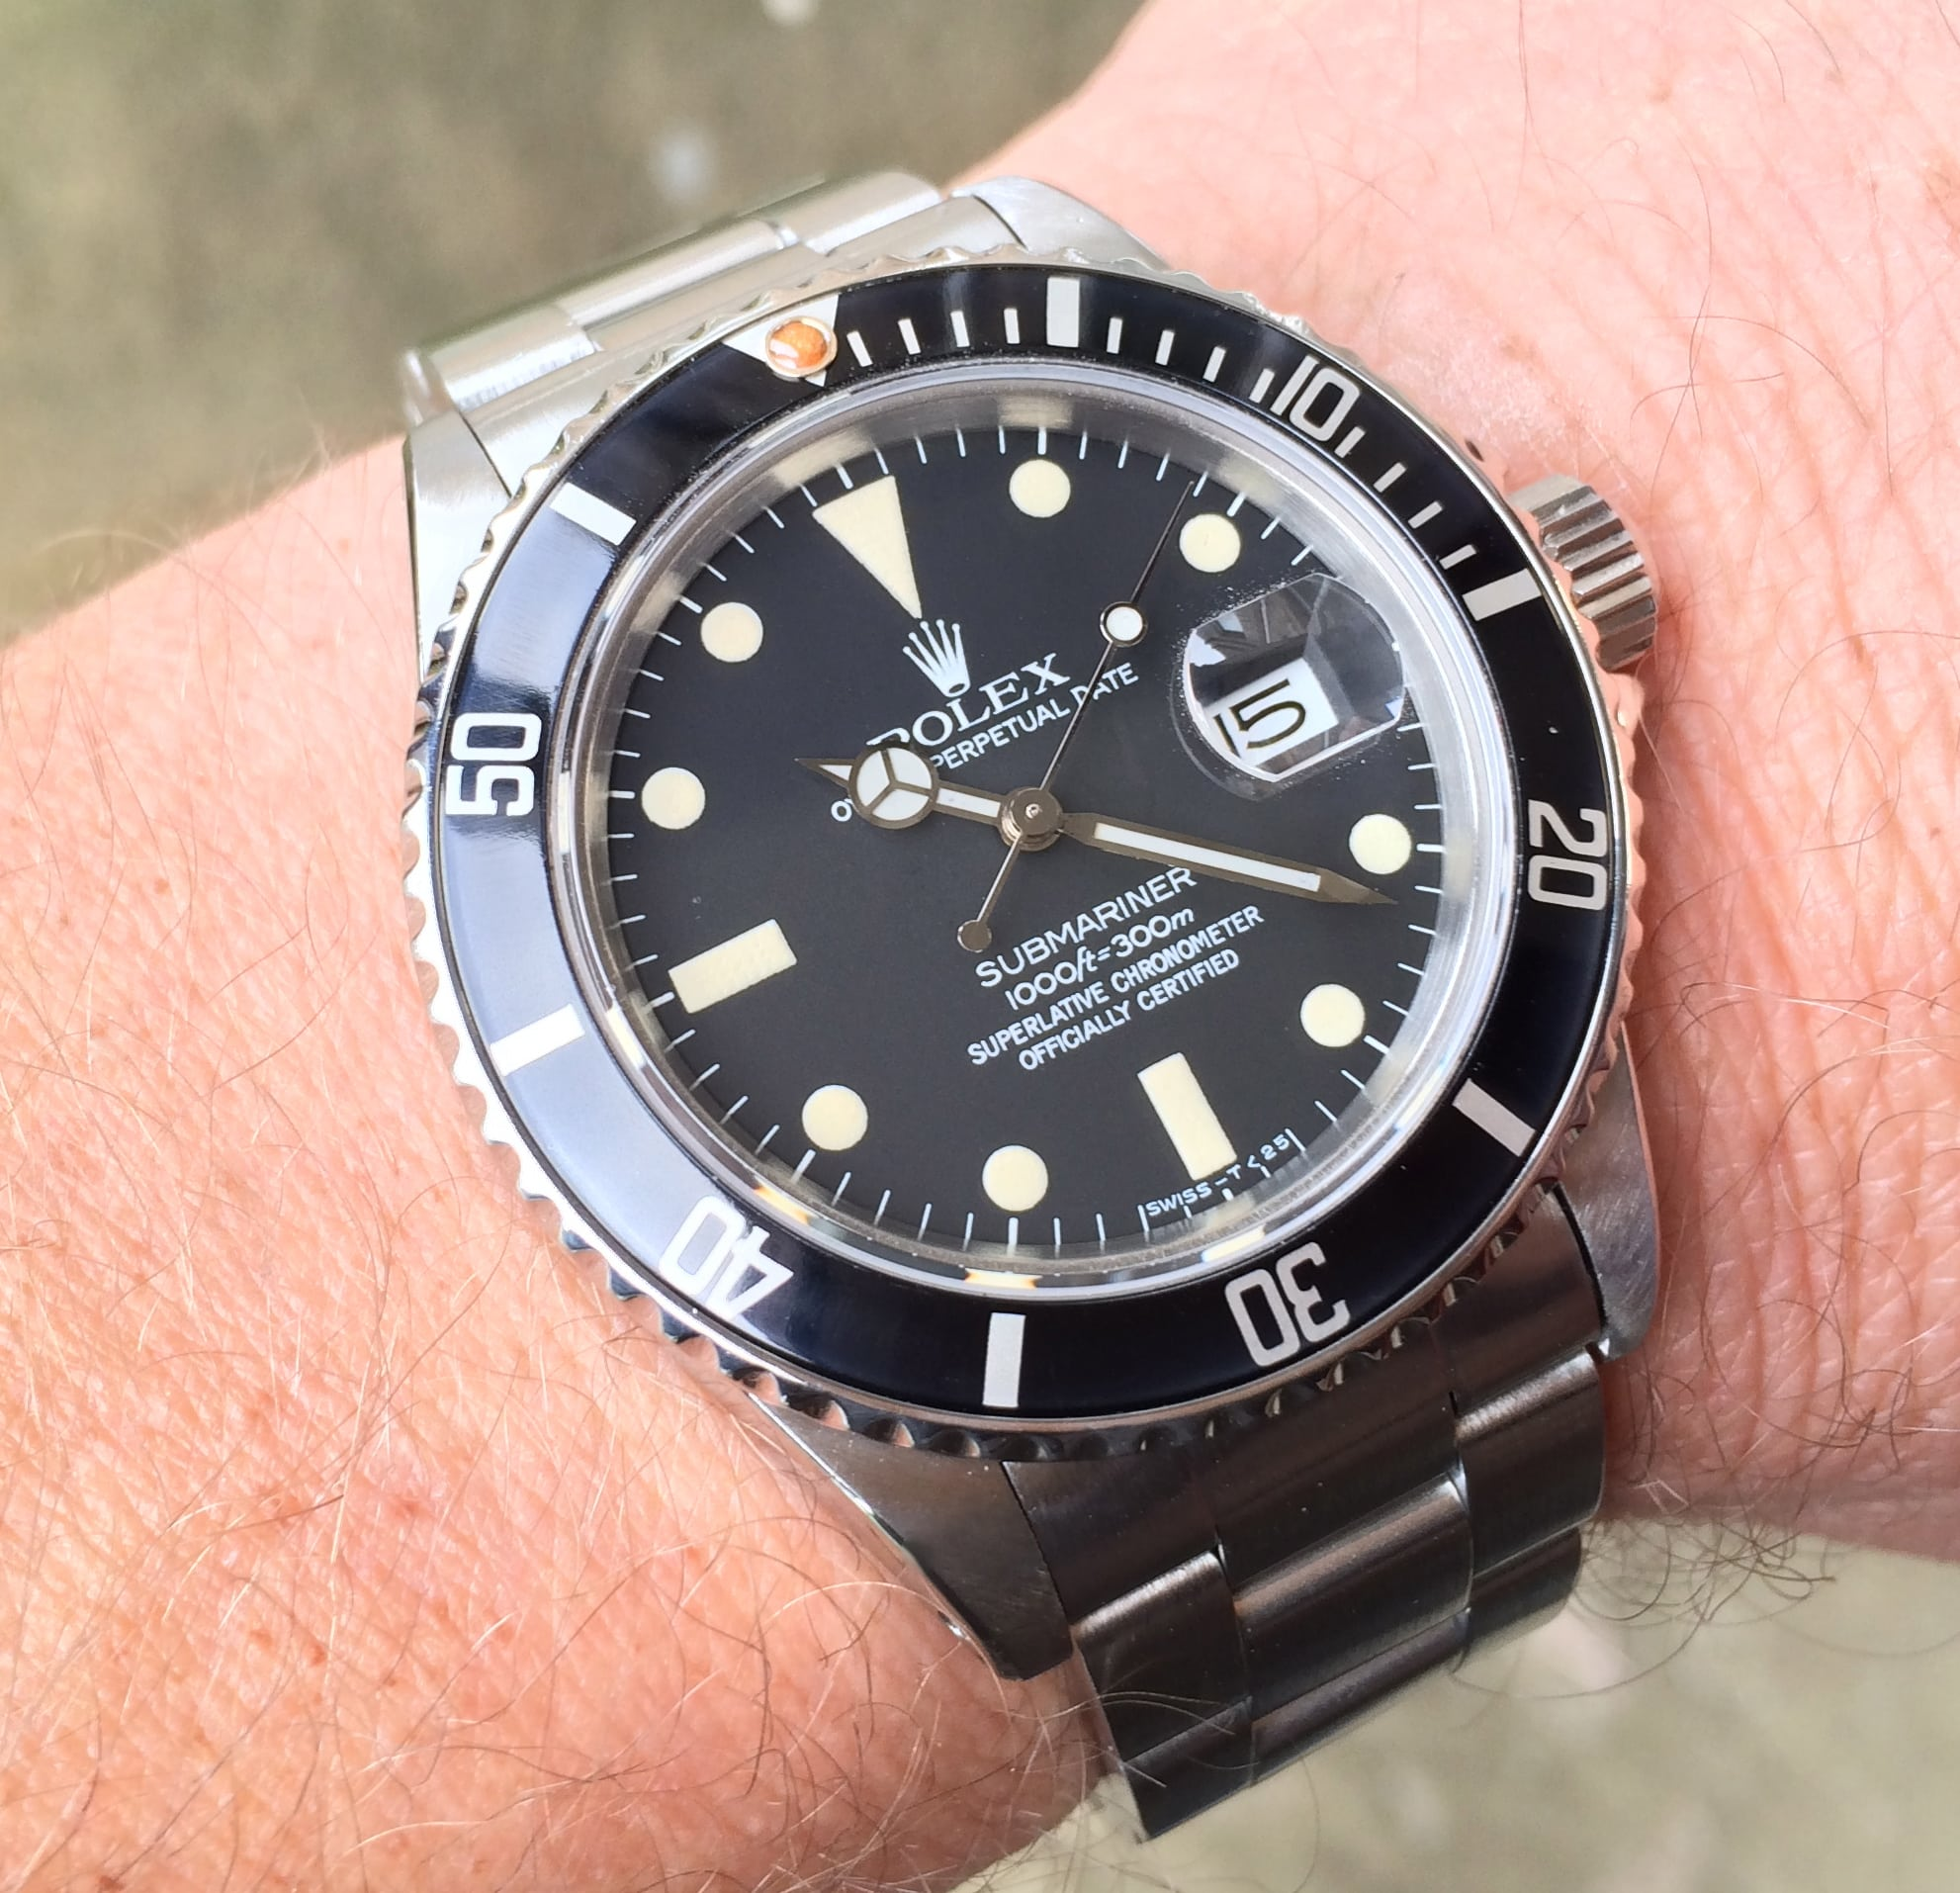 dating rolex submariner Rolex submariner watches - buy now guaranteed 100% authentic with free shipping at authenticwatchescom.